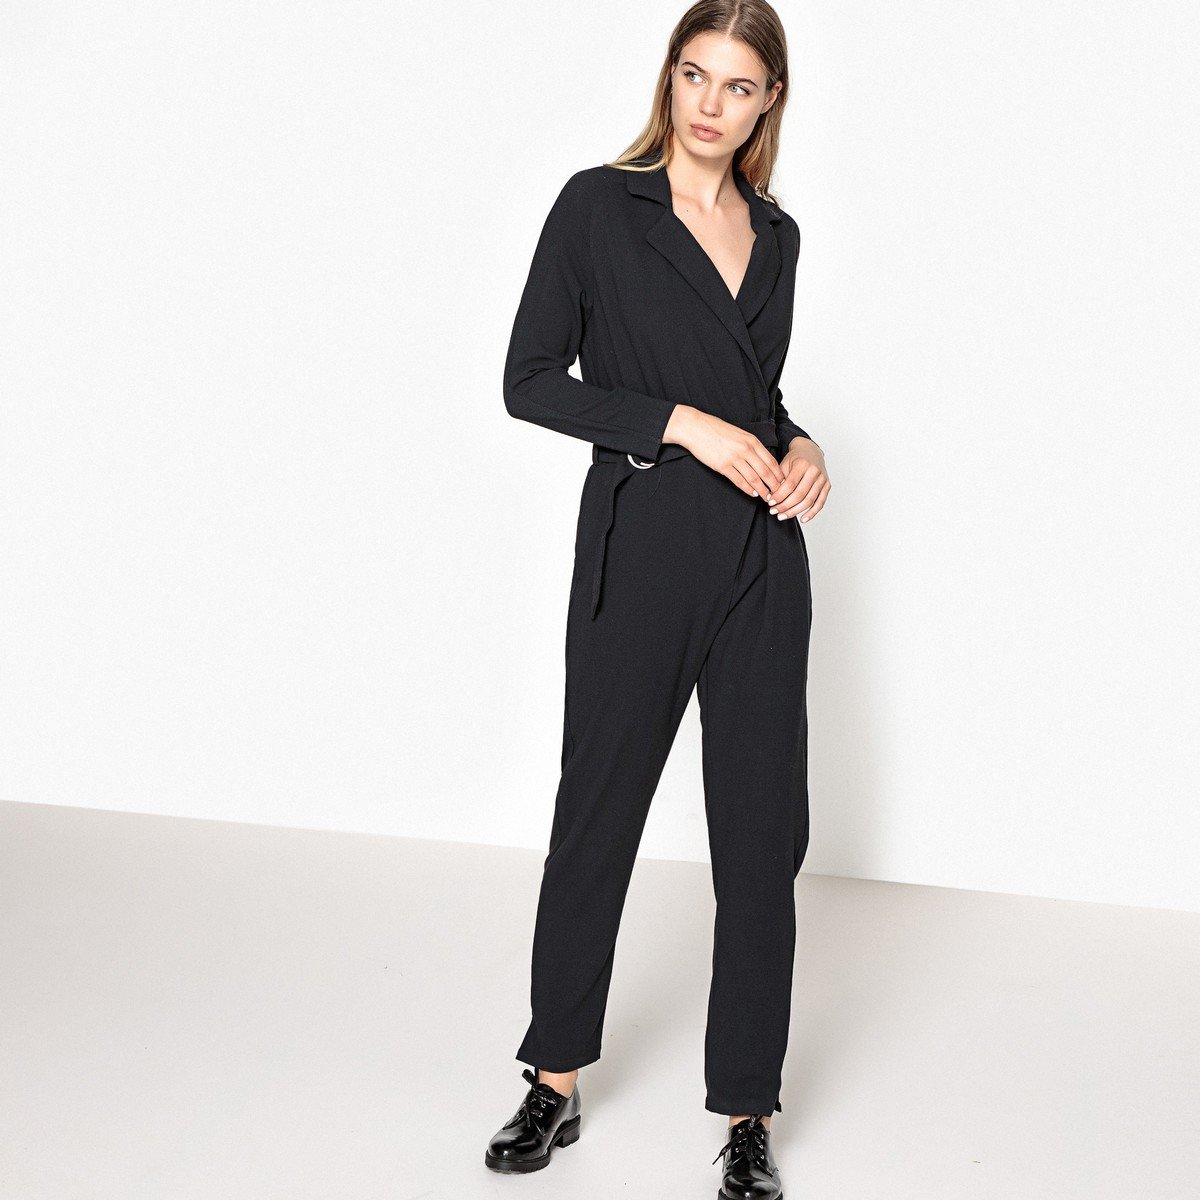 Pepe Jeans Womens Shirt Style Jumpsuit With Belt Grey Size M by Pepe Jeans